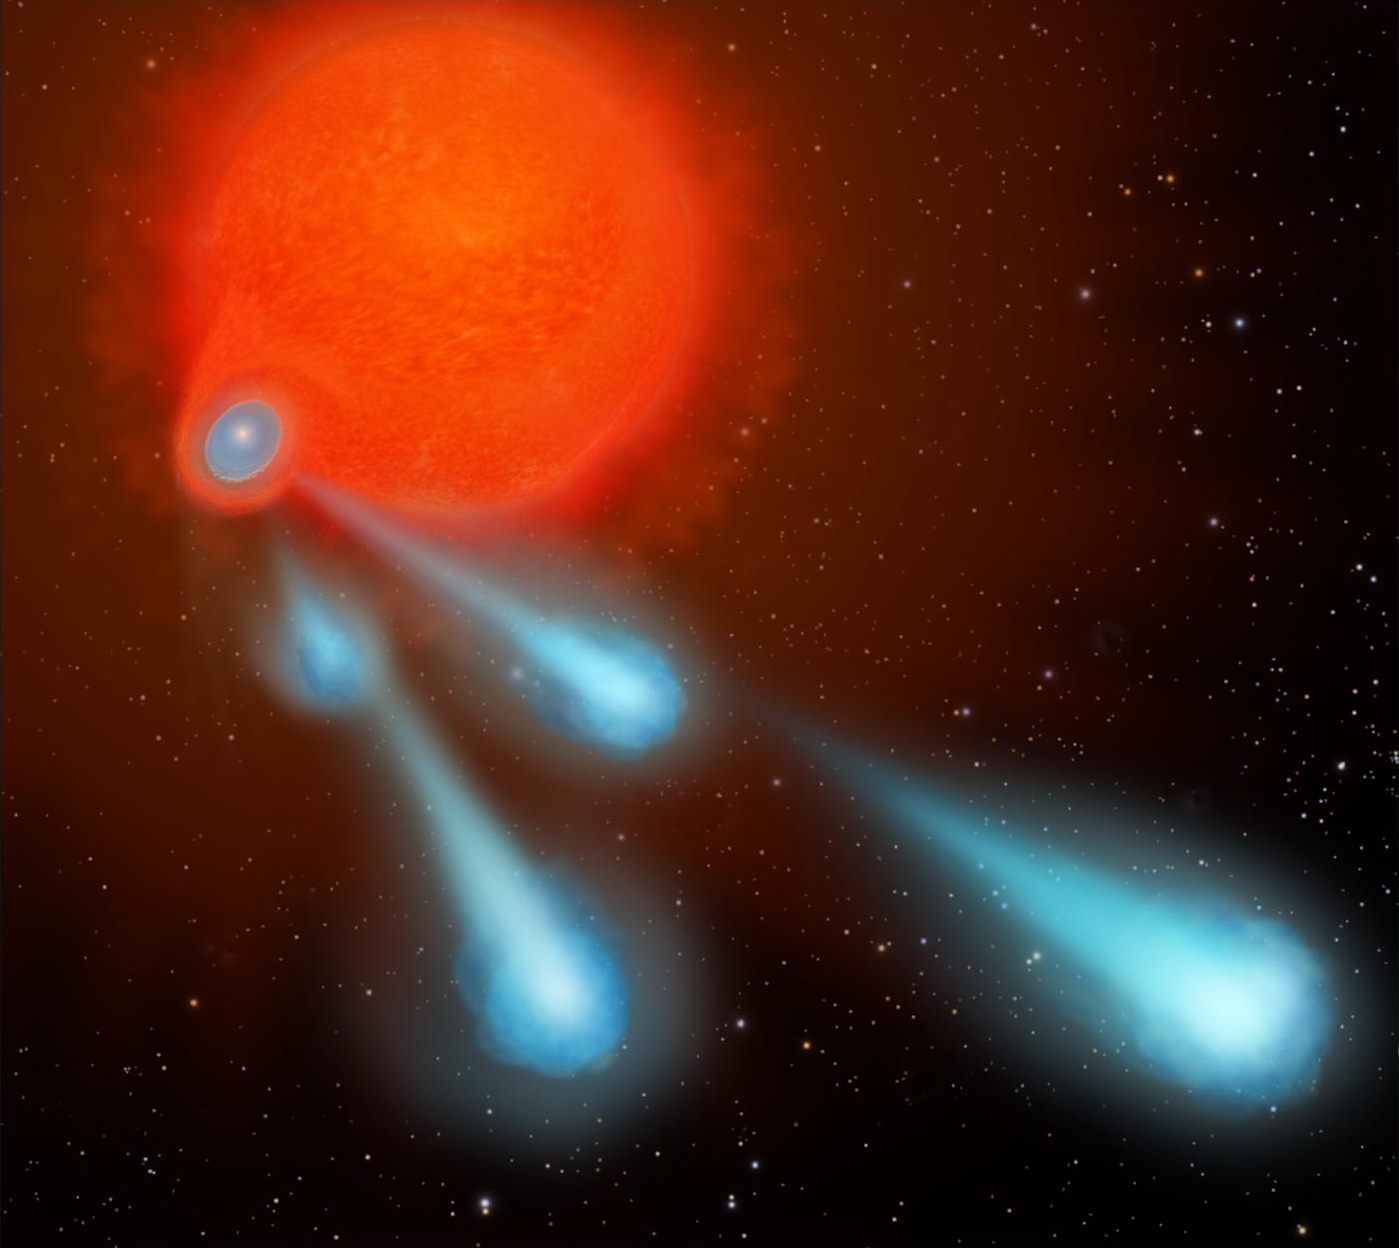 4) This ejection process is repeated every eight years, which is the time it takes for the orbiting star to make another pass through the bloated red giant's envelope. Illustration credit: NASA, ESA, and A. Feild (STScI).